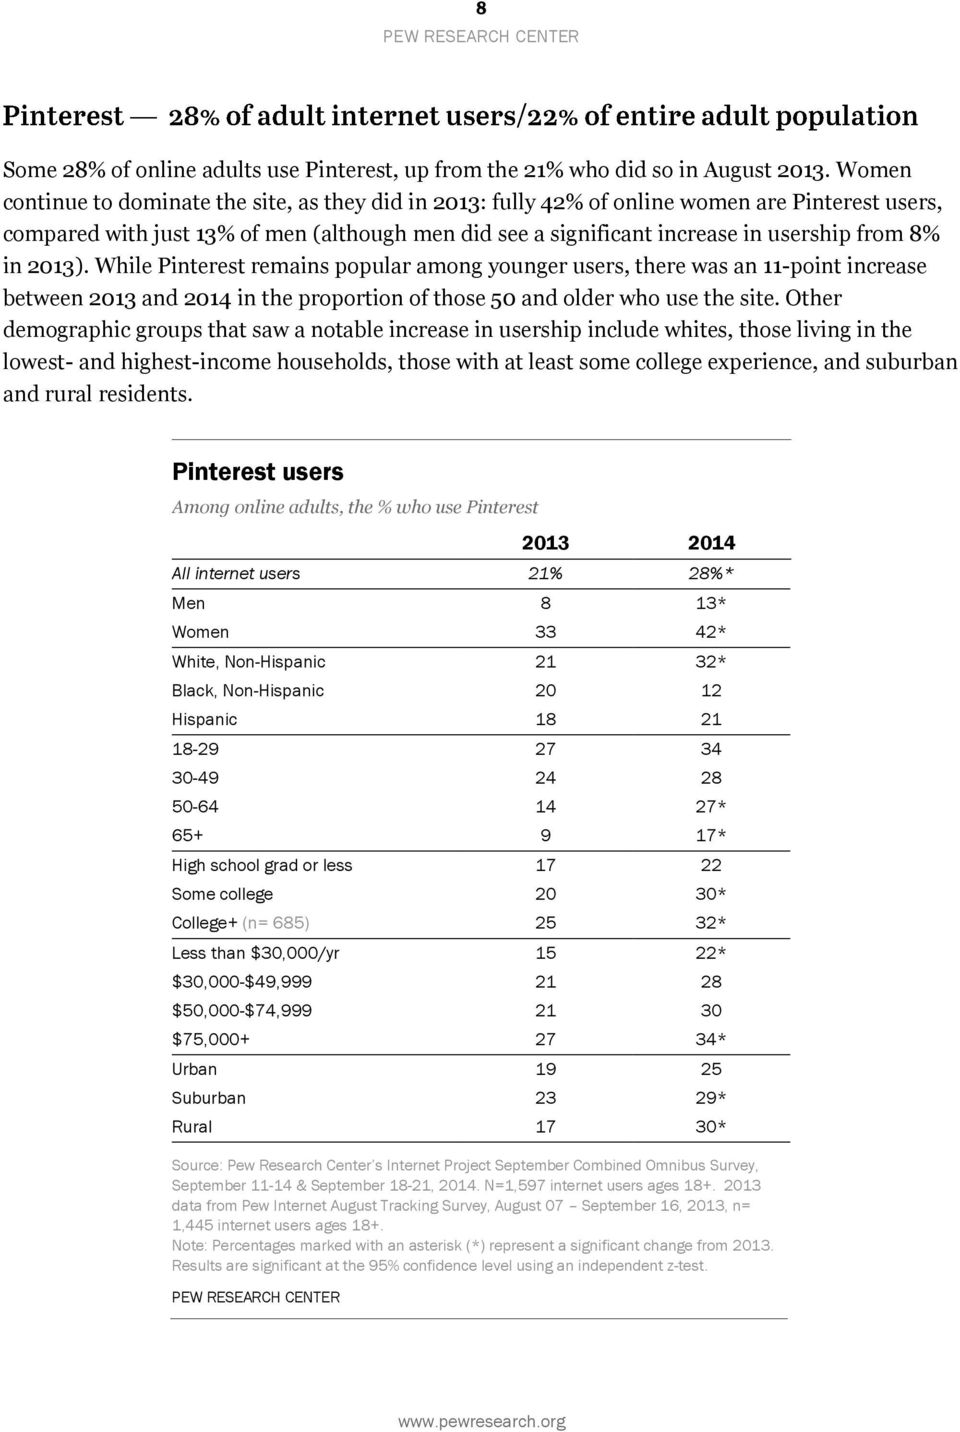 in 2013). While Pinterest remains popular among younger users, there was an 11-point increase between 2013 and 2014 in the proportion of those 50 and older who use the site.